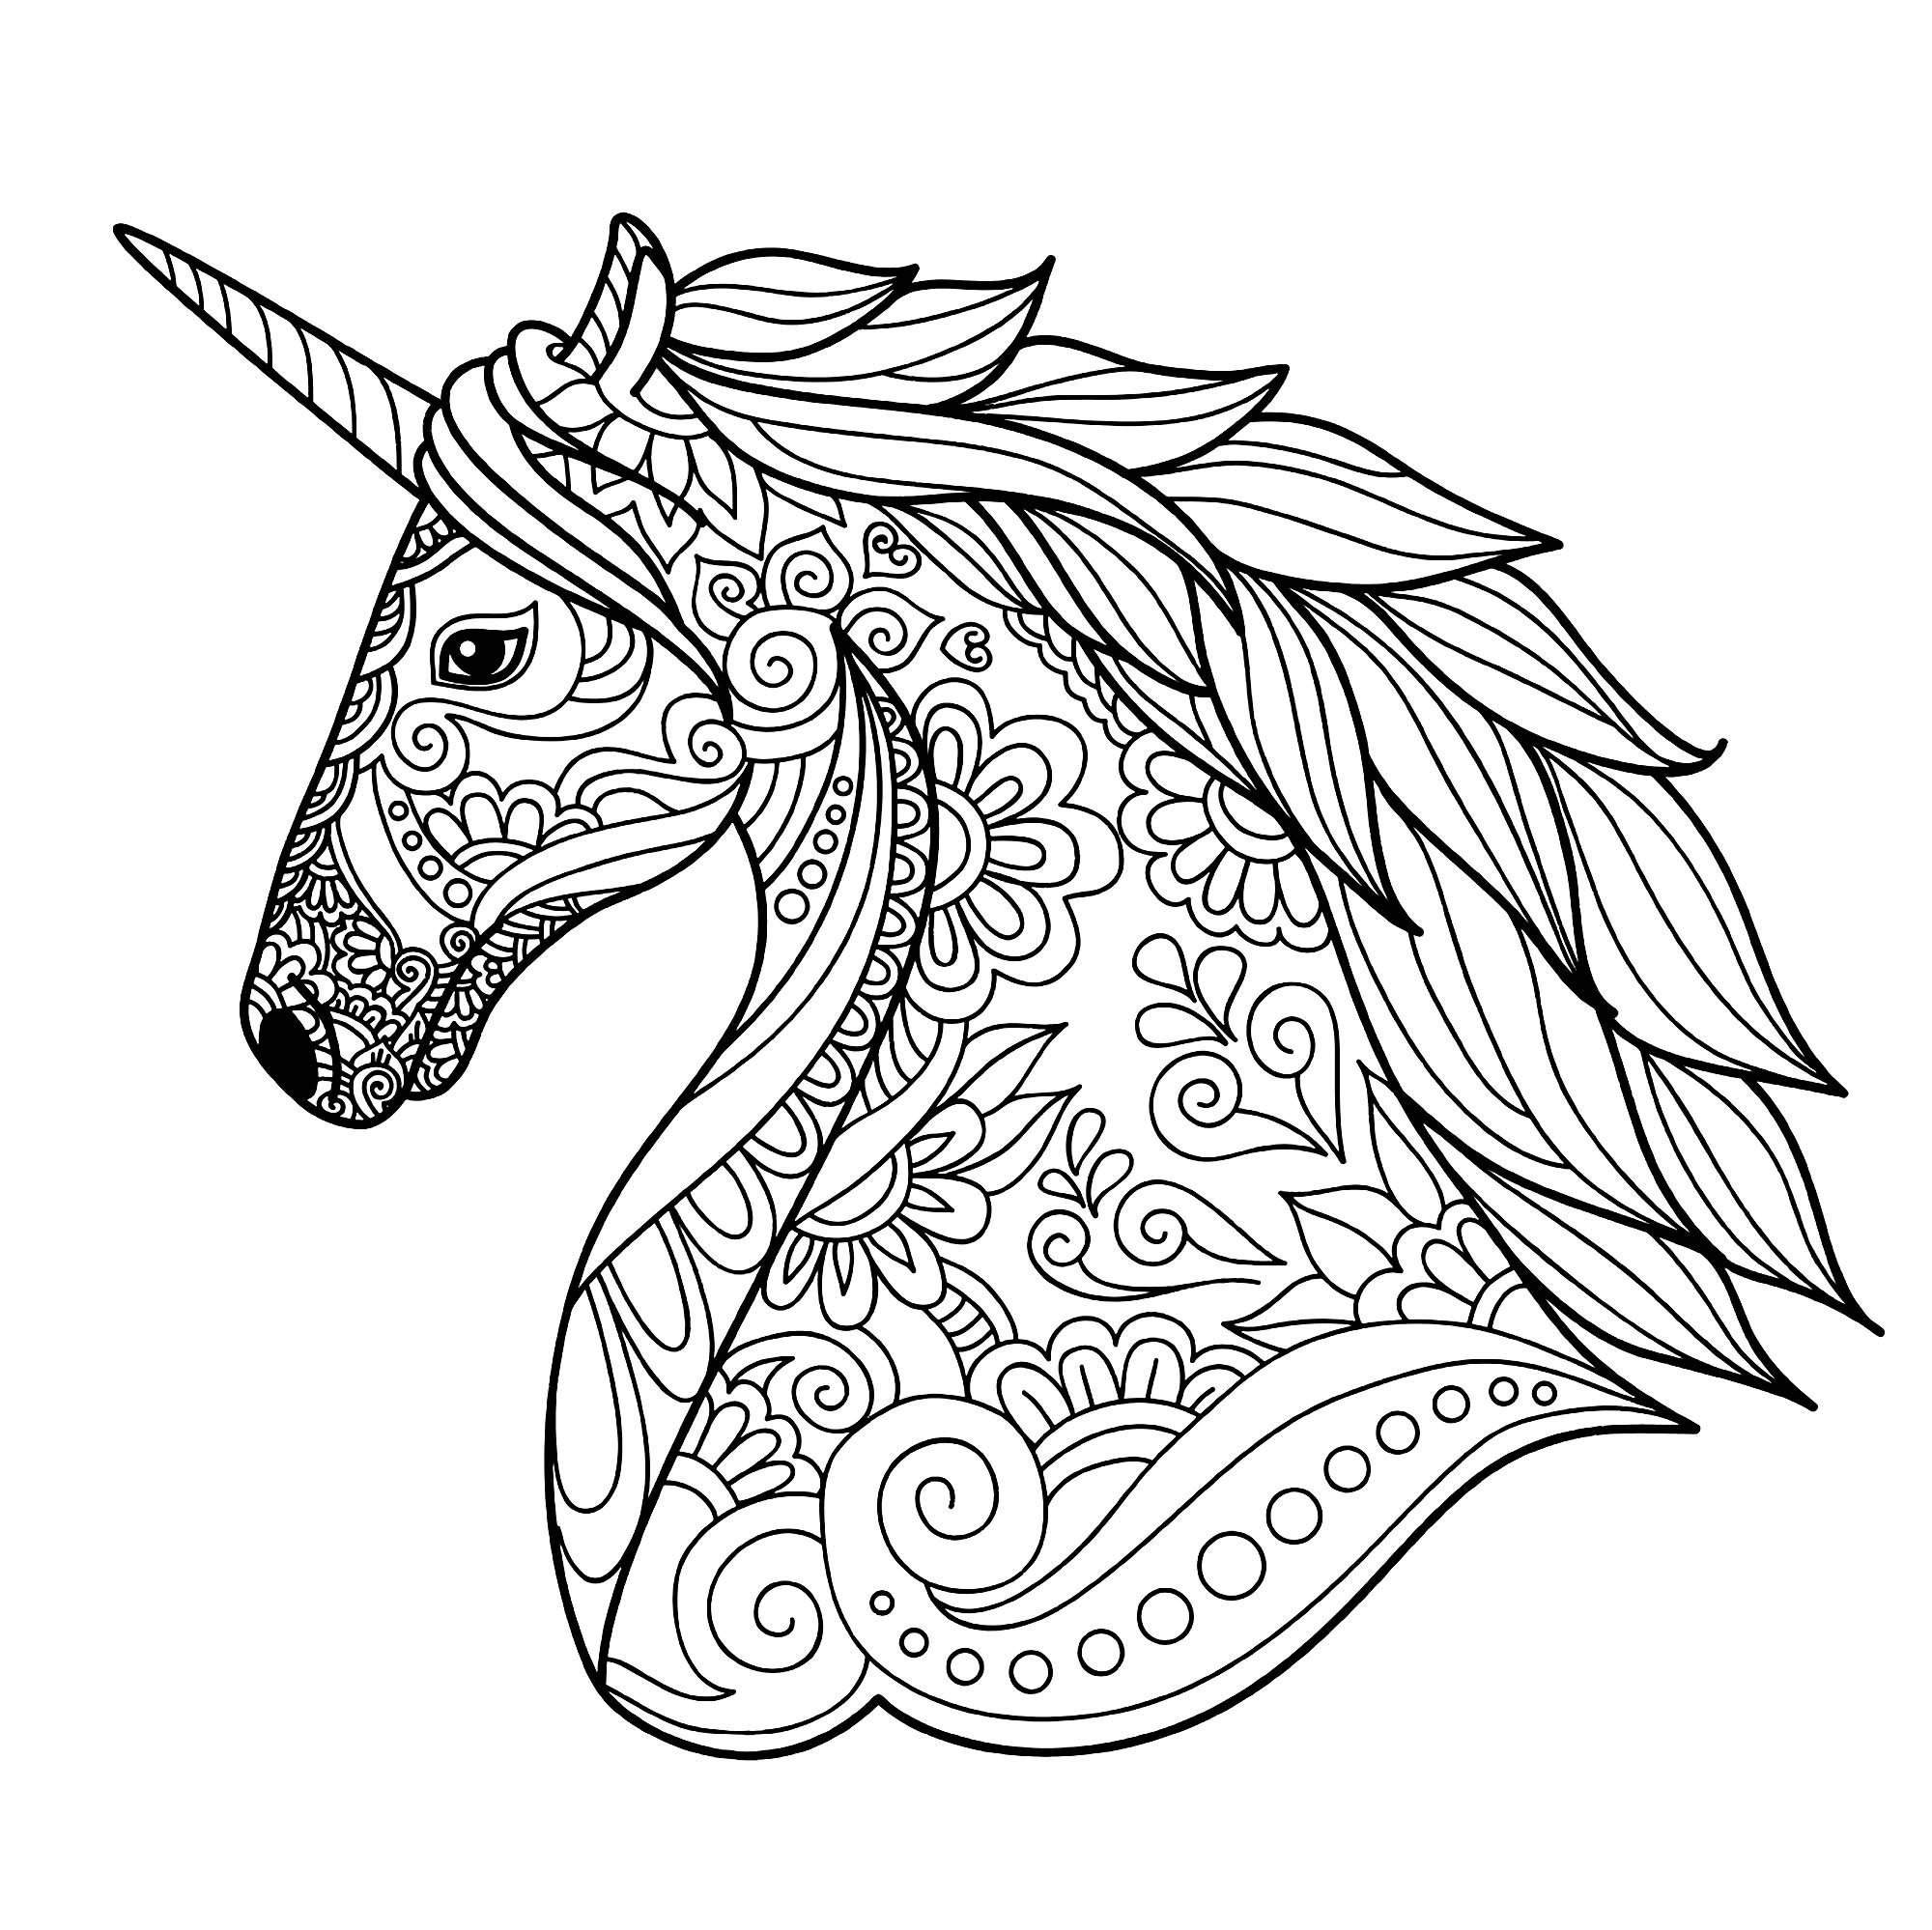 a unicorn coloring sheet super sweet unicorn coloring pages free printable sheet a coloring unicorn